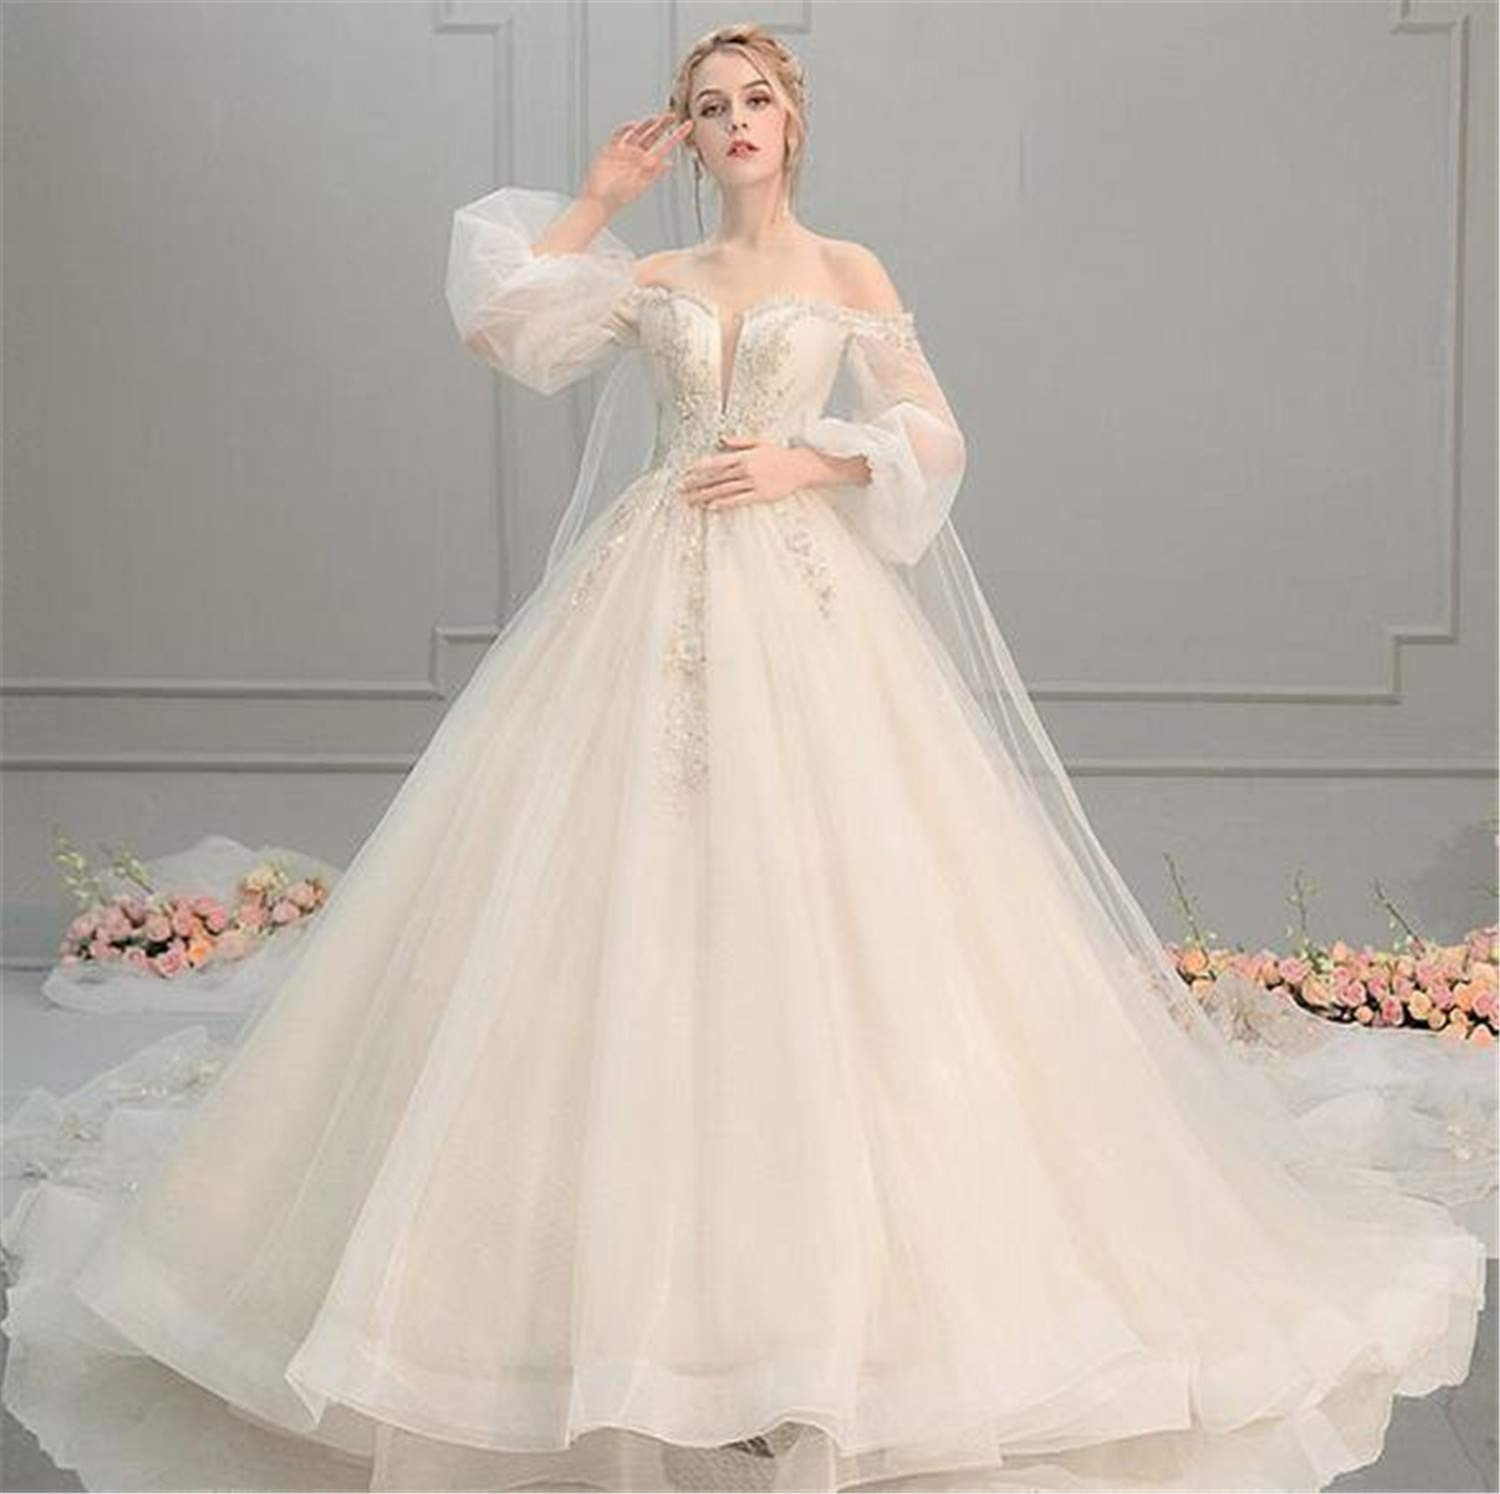 0fe0f2ff134 One Shoulder Bridal Dress - Gomes Weine AG